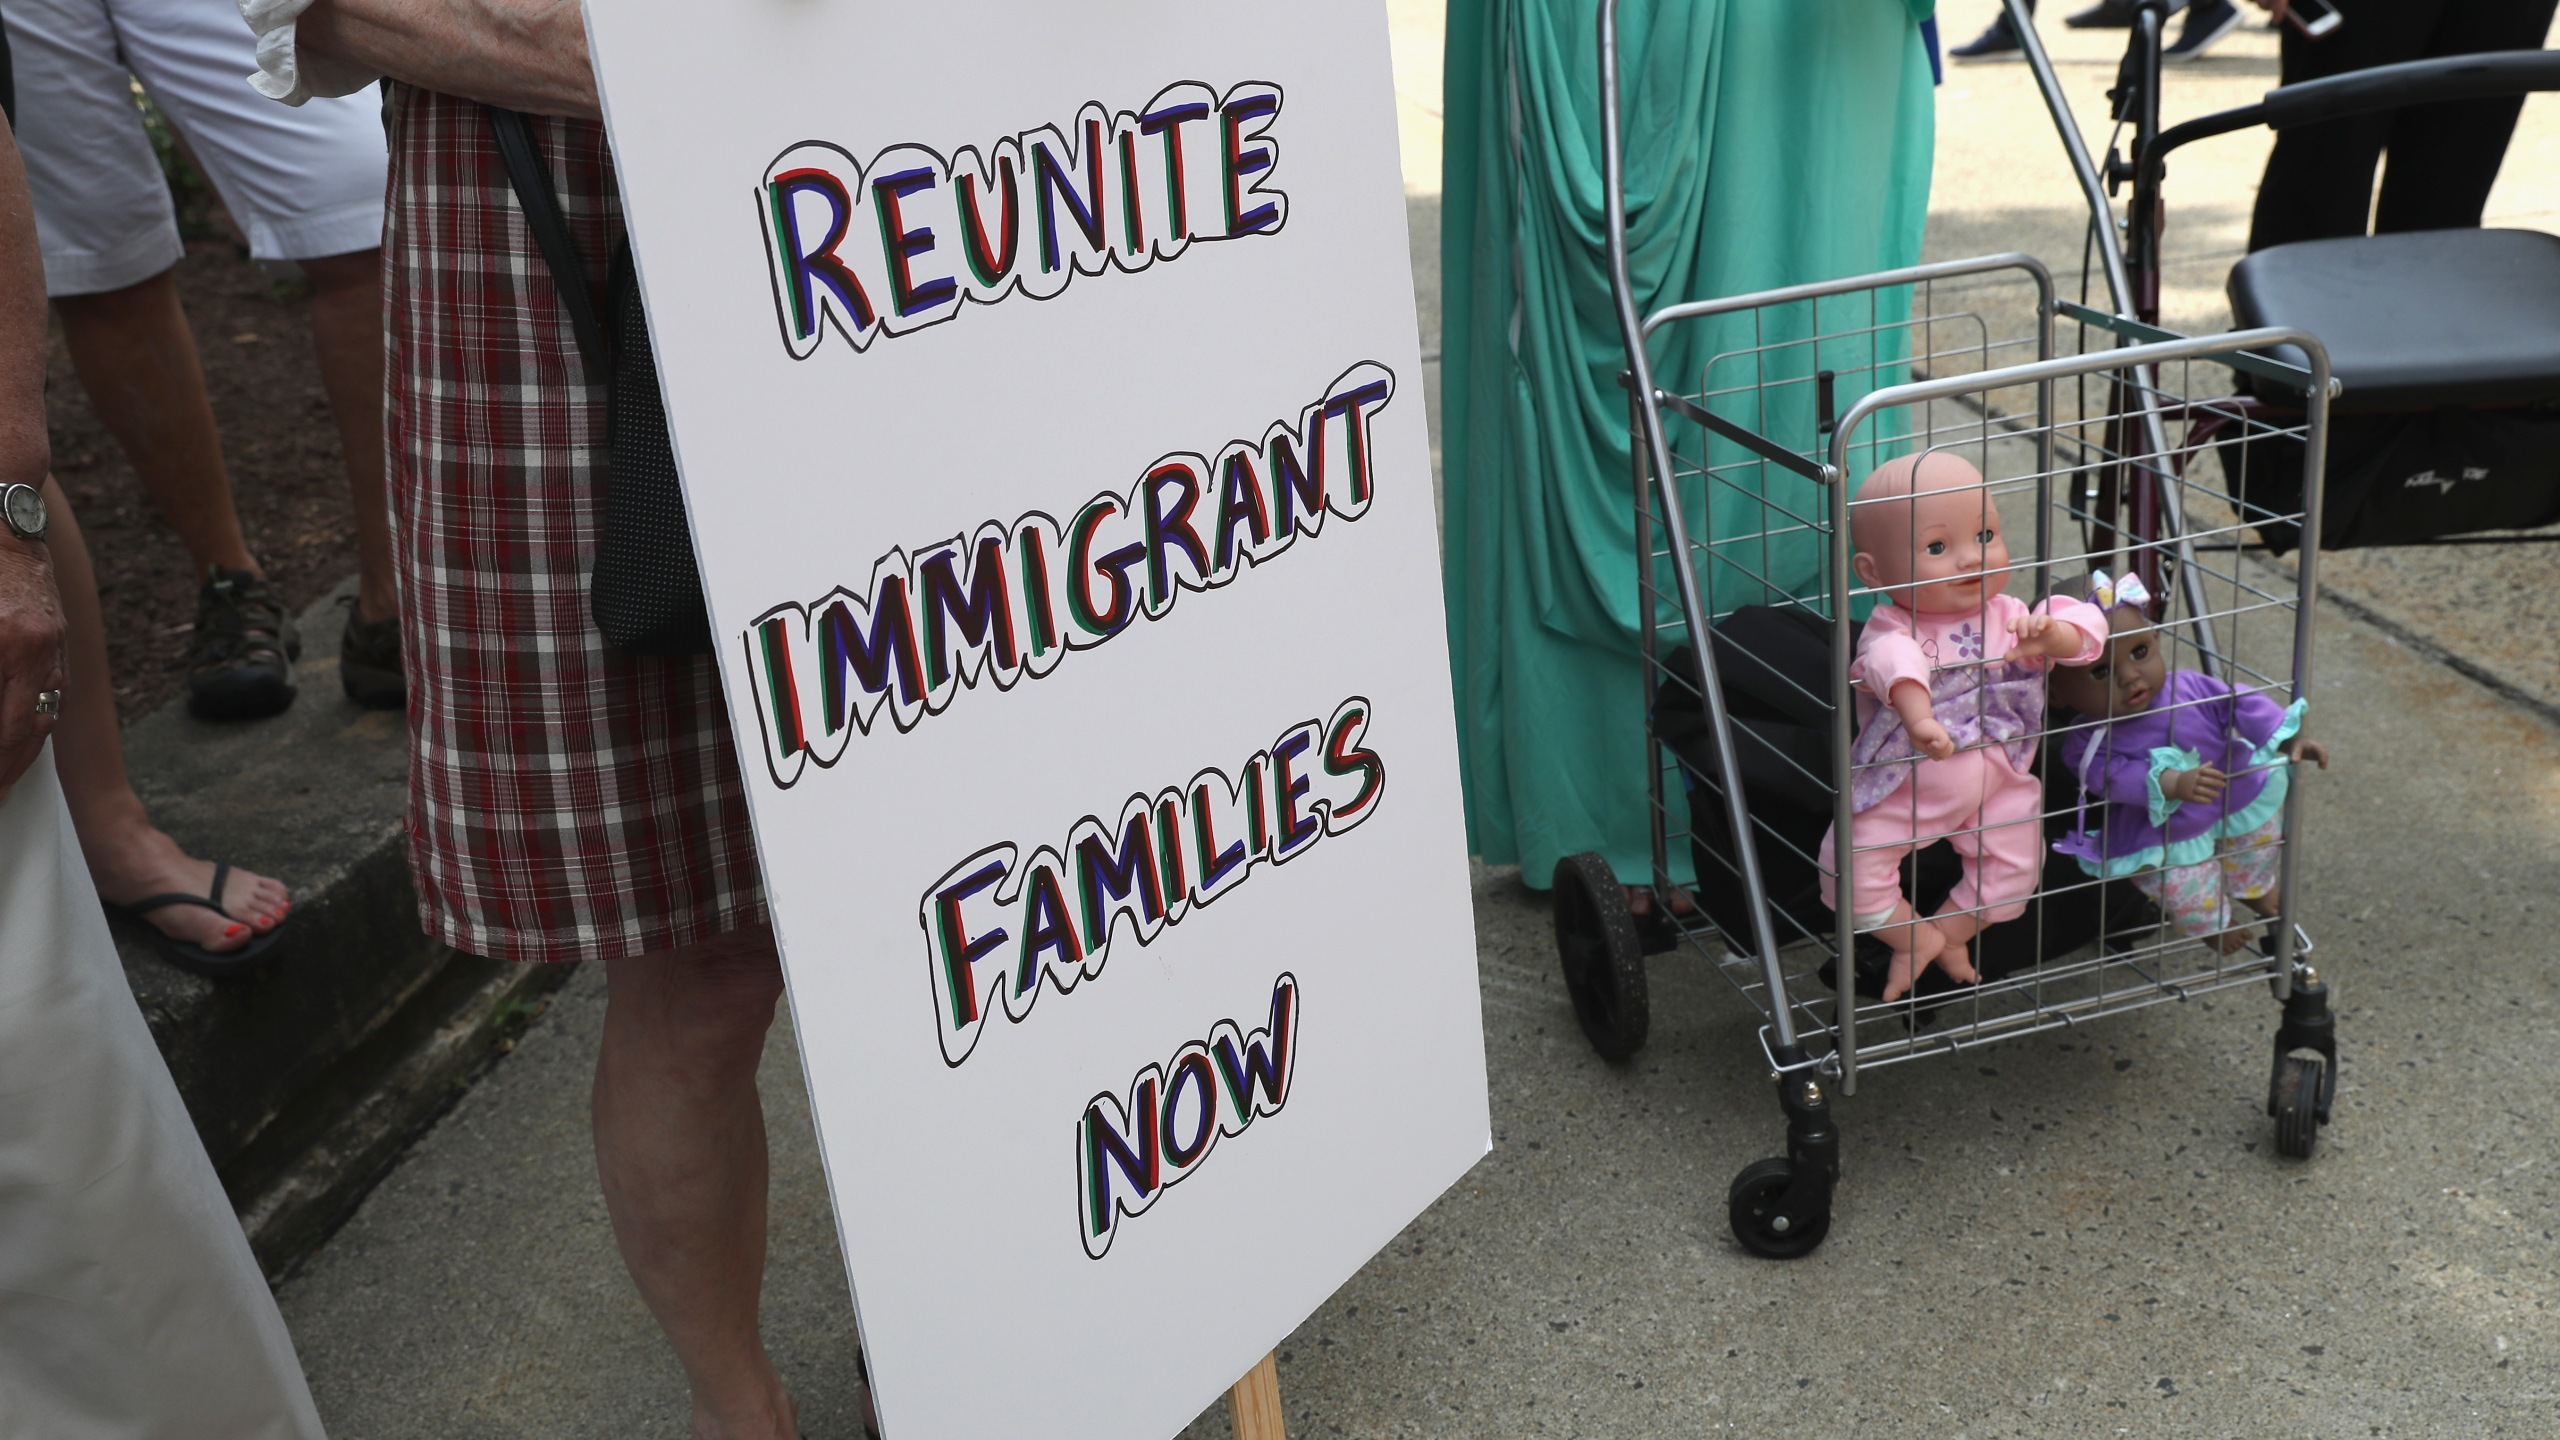 Dolls stand in a shopping cart as protesters rally against the separation of immigrant families in front of a U.S. federal court on July 11, 2018 in Bridgeport, Connecticut. (Credit: John Moore/Getty Images)